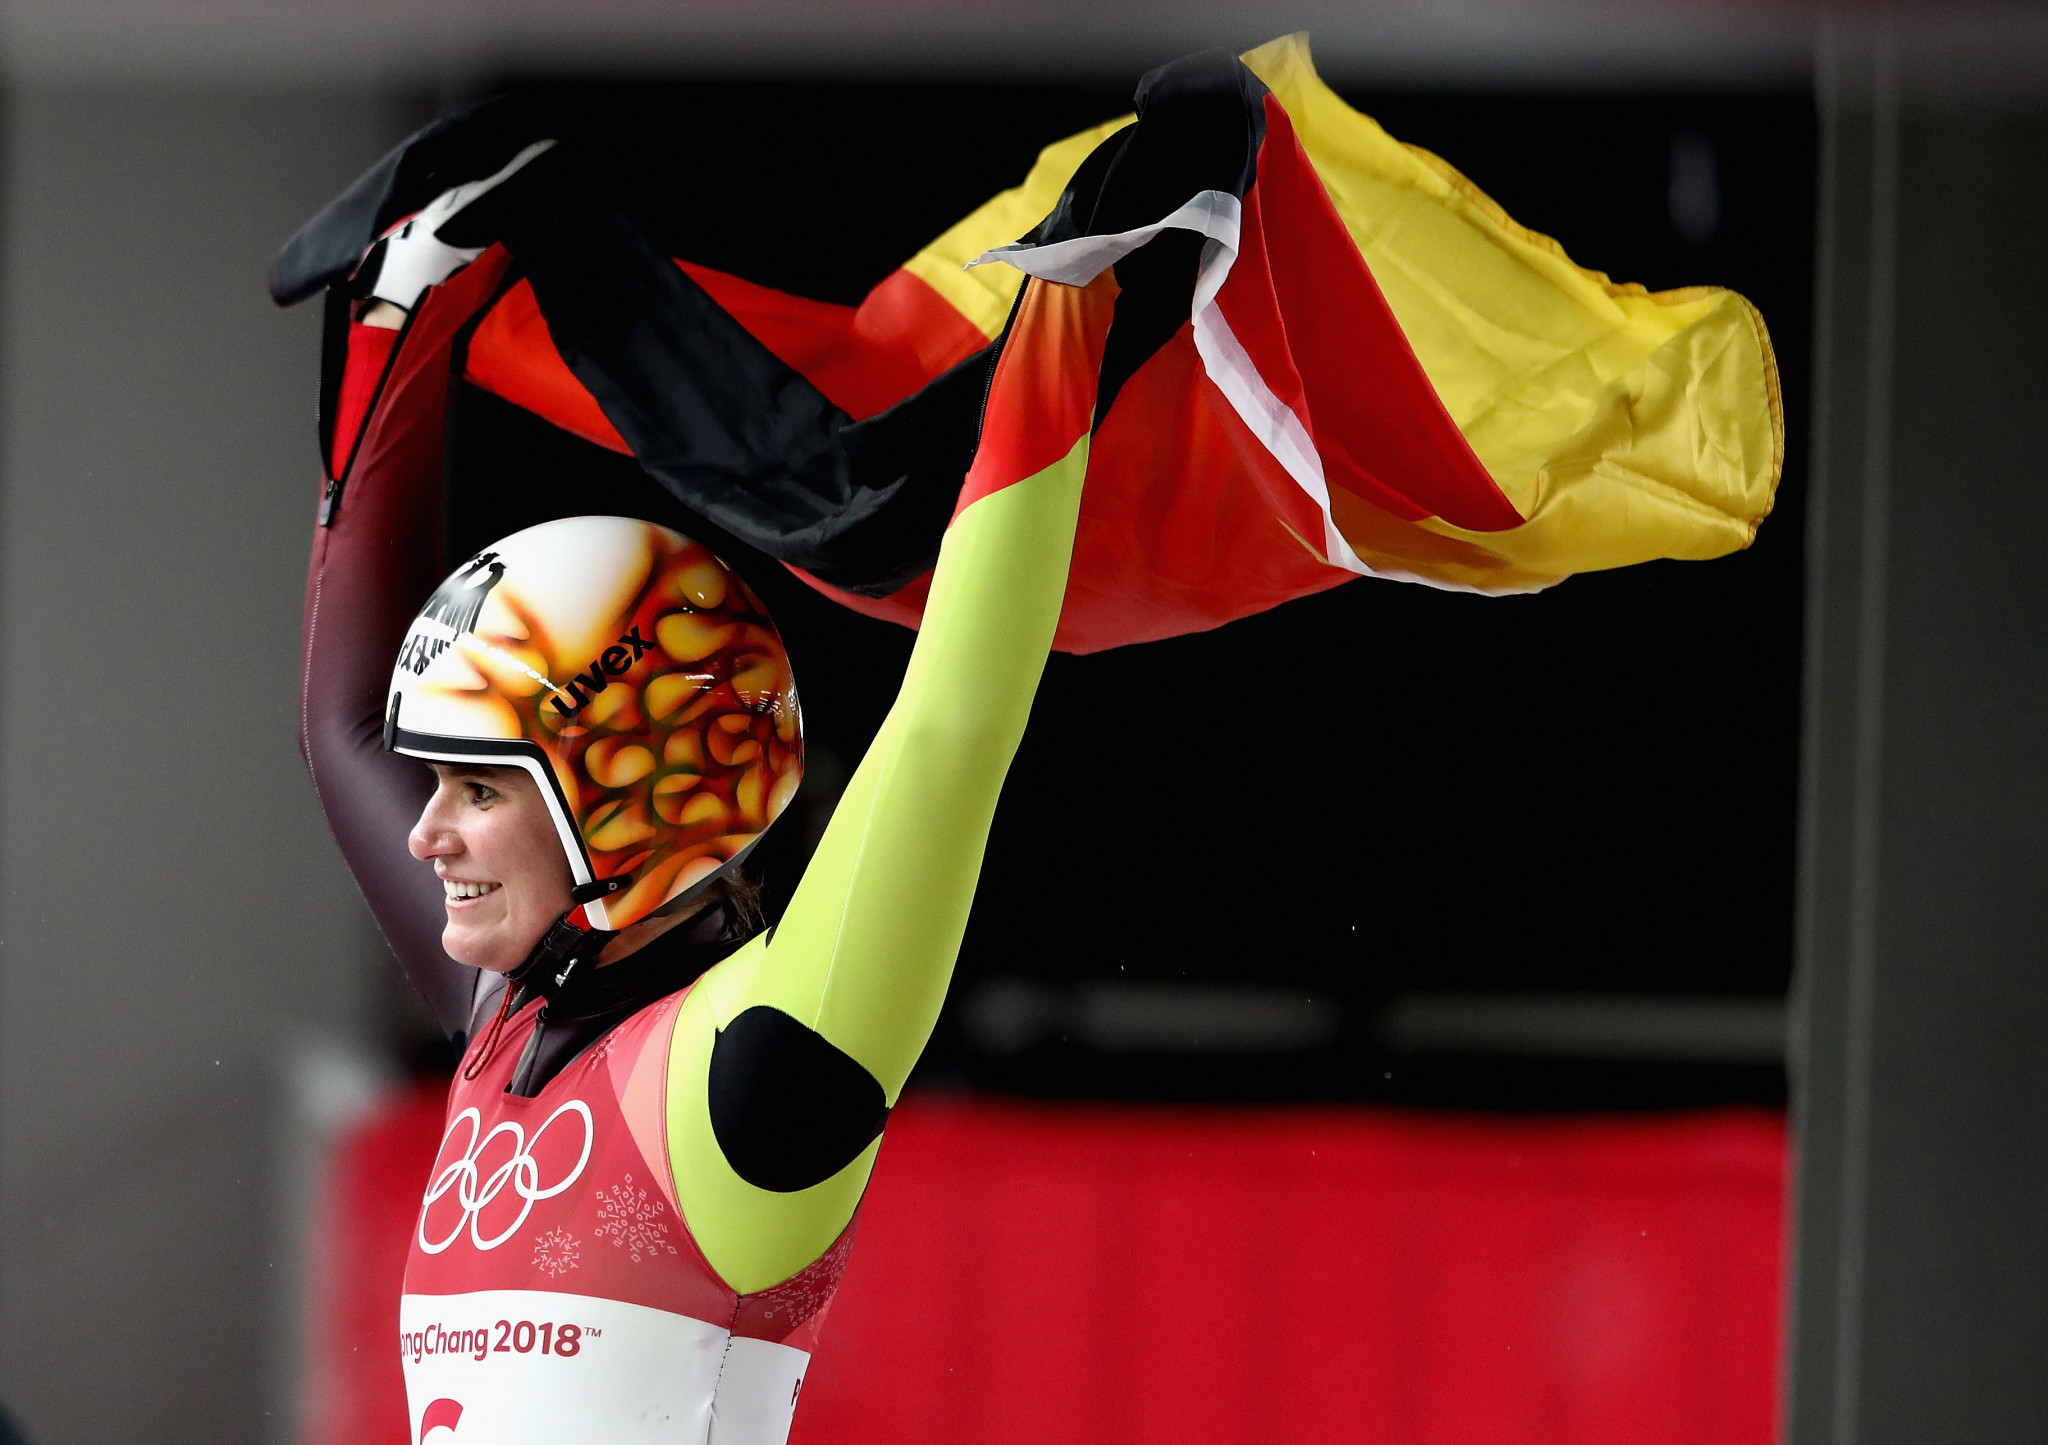 Reigning Olympic champion Natalie Geisenberger of Germany maintained her form to take gold in the first Luge World Cup event of the season in Innsbruck ©Getty Images